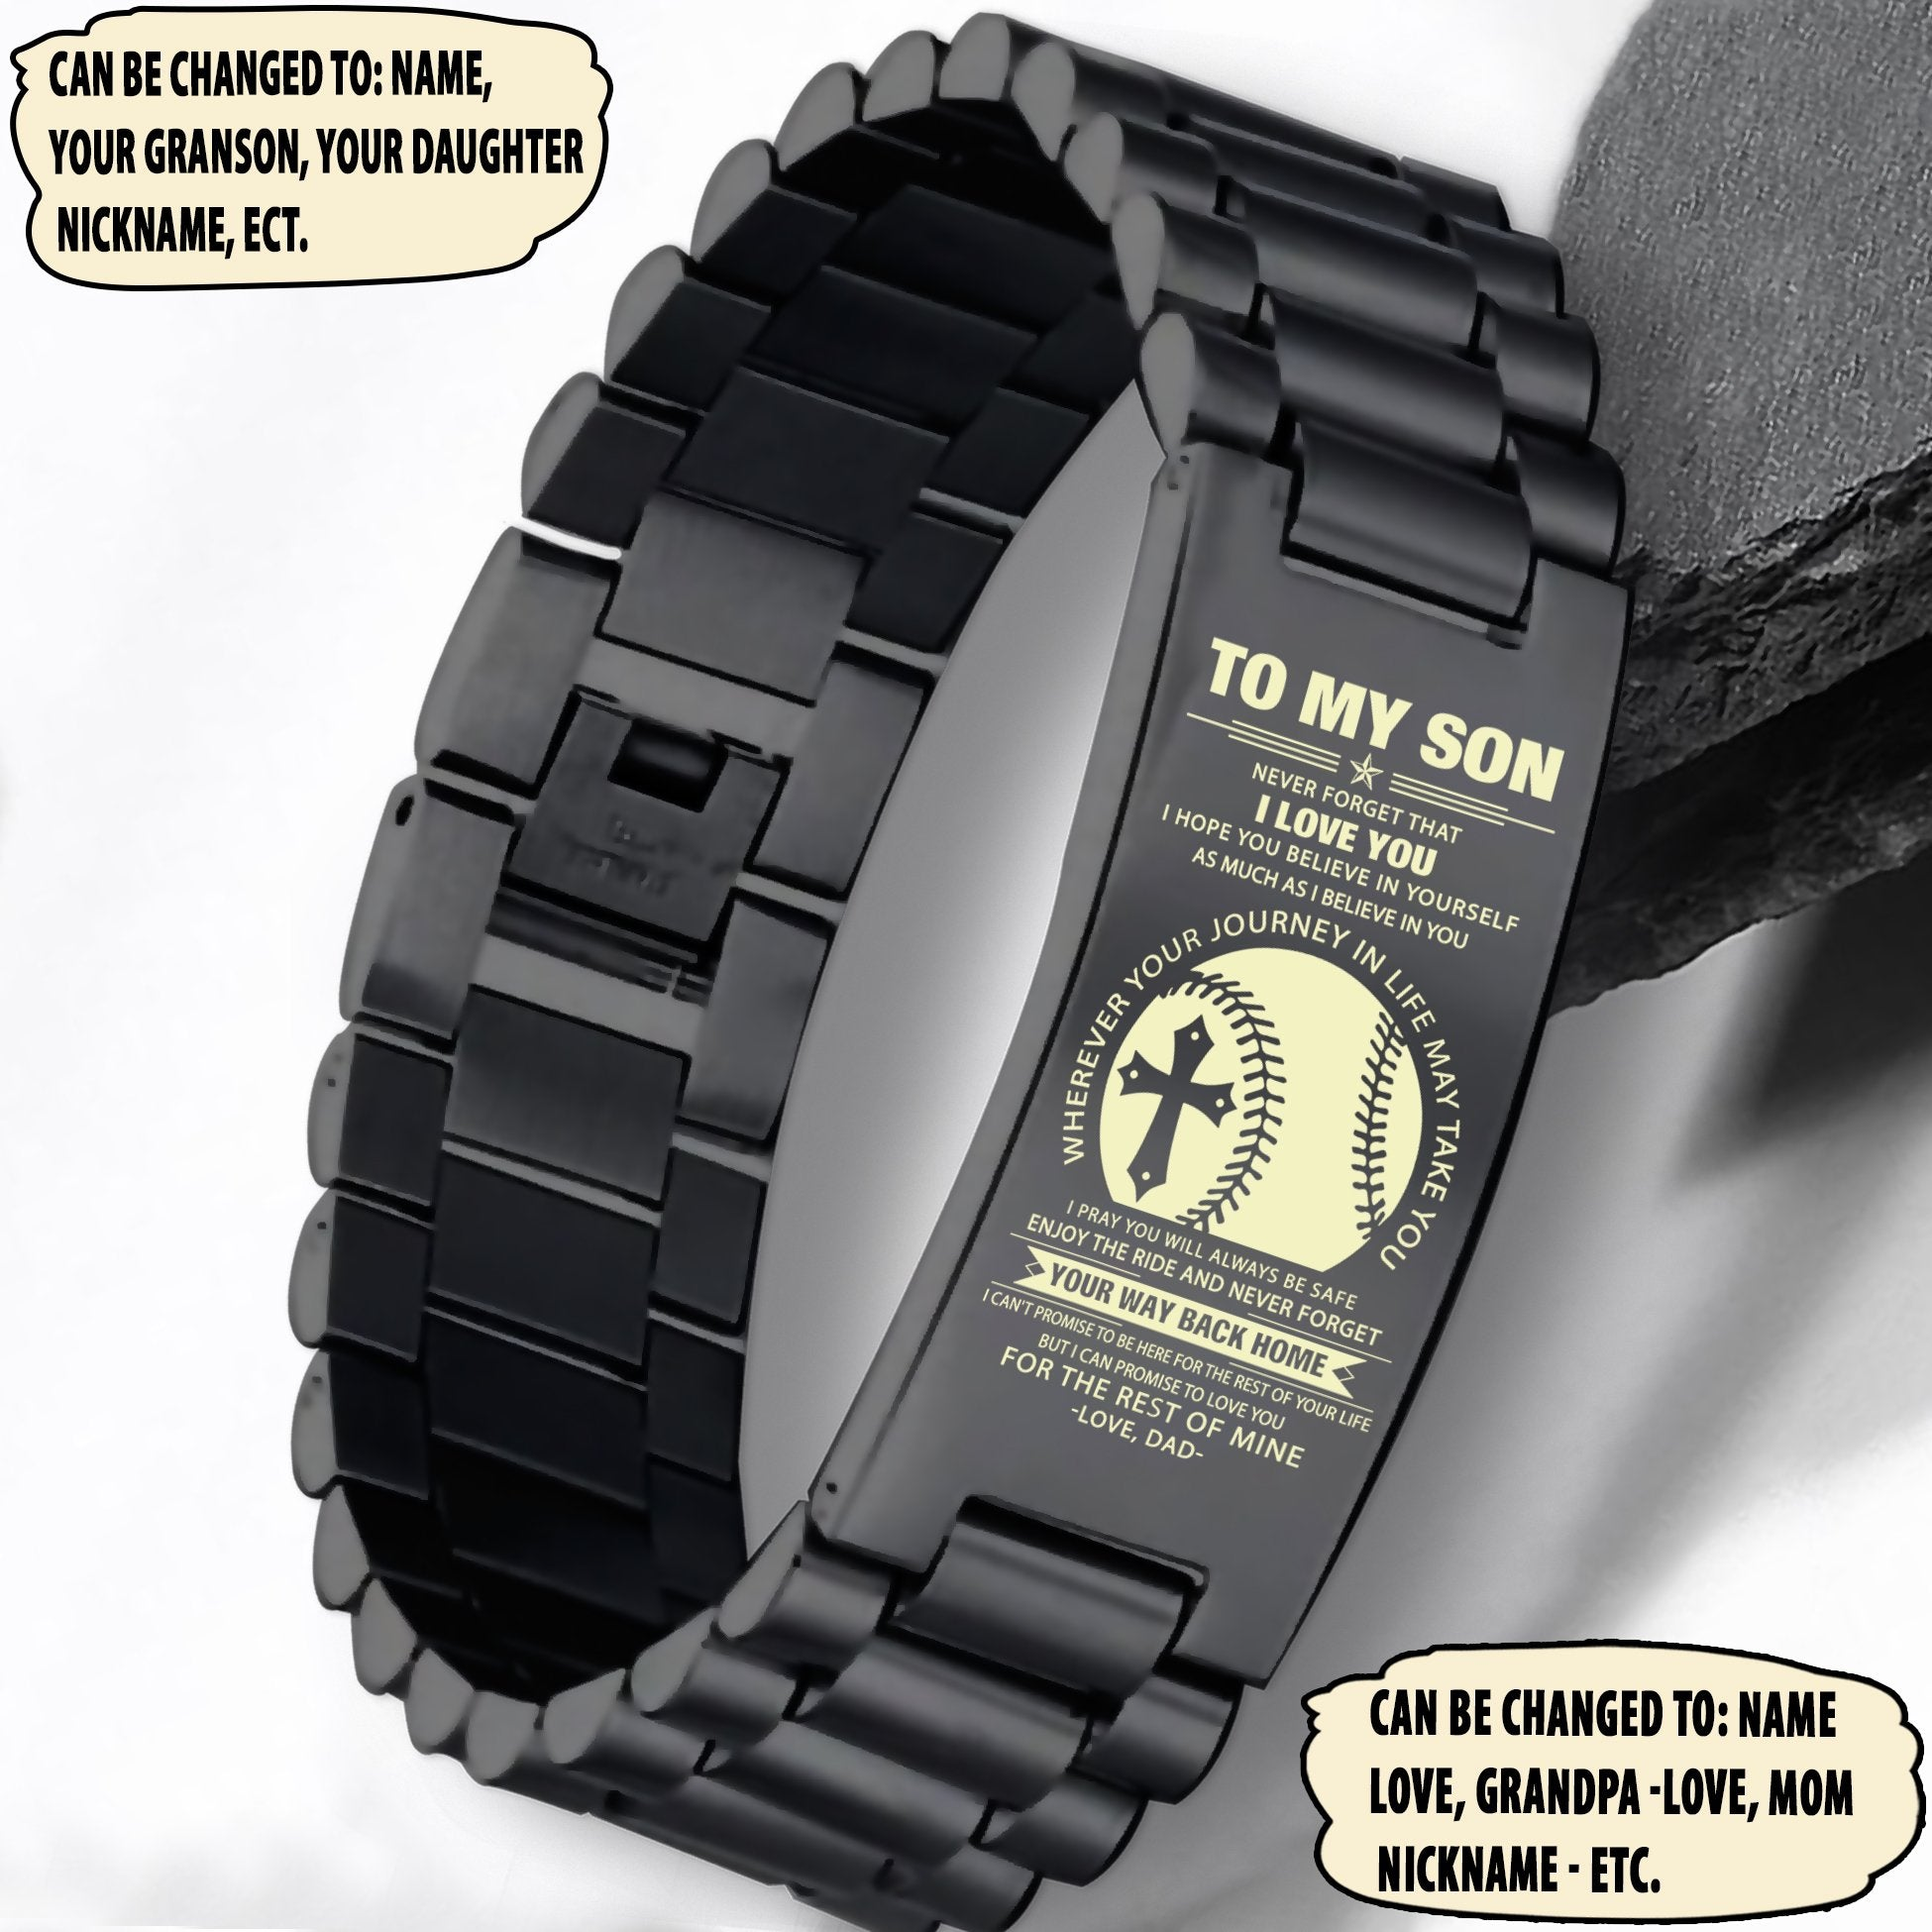 (LP173) Customizable Baseball ENGRAVED  bracelet - dad to son- way back home. FREE SHIPPING FROM 2 ITEMS